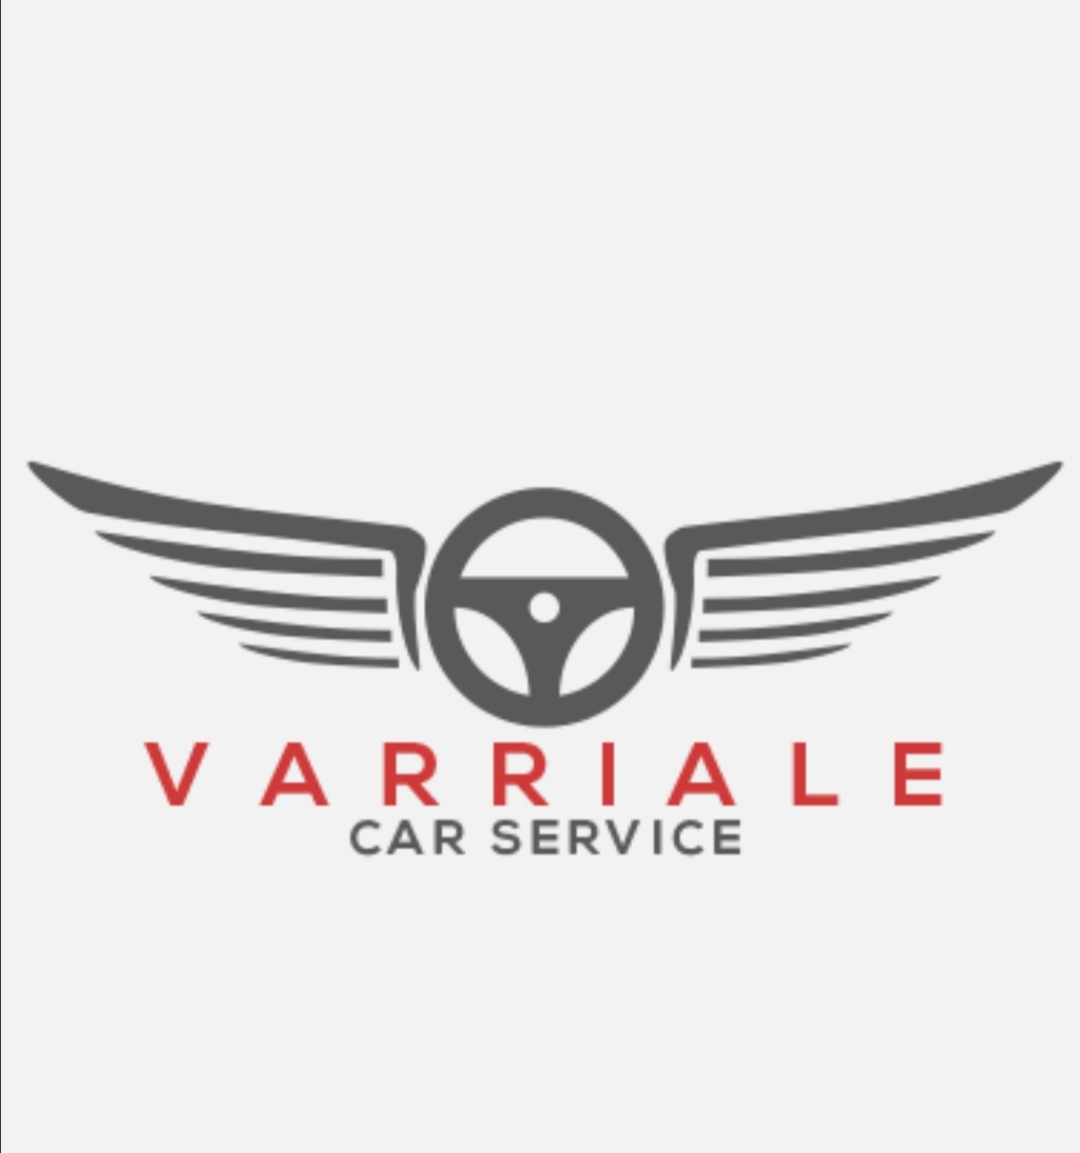 Varriale Car Service